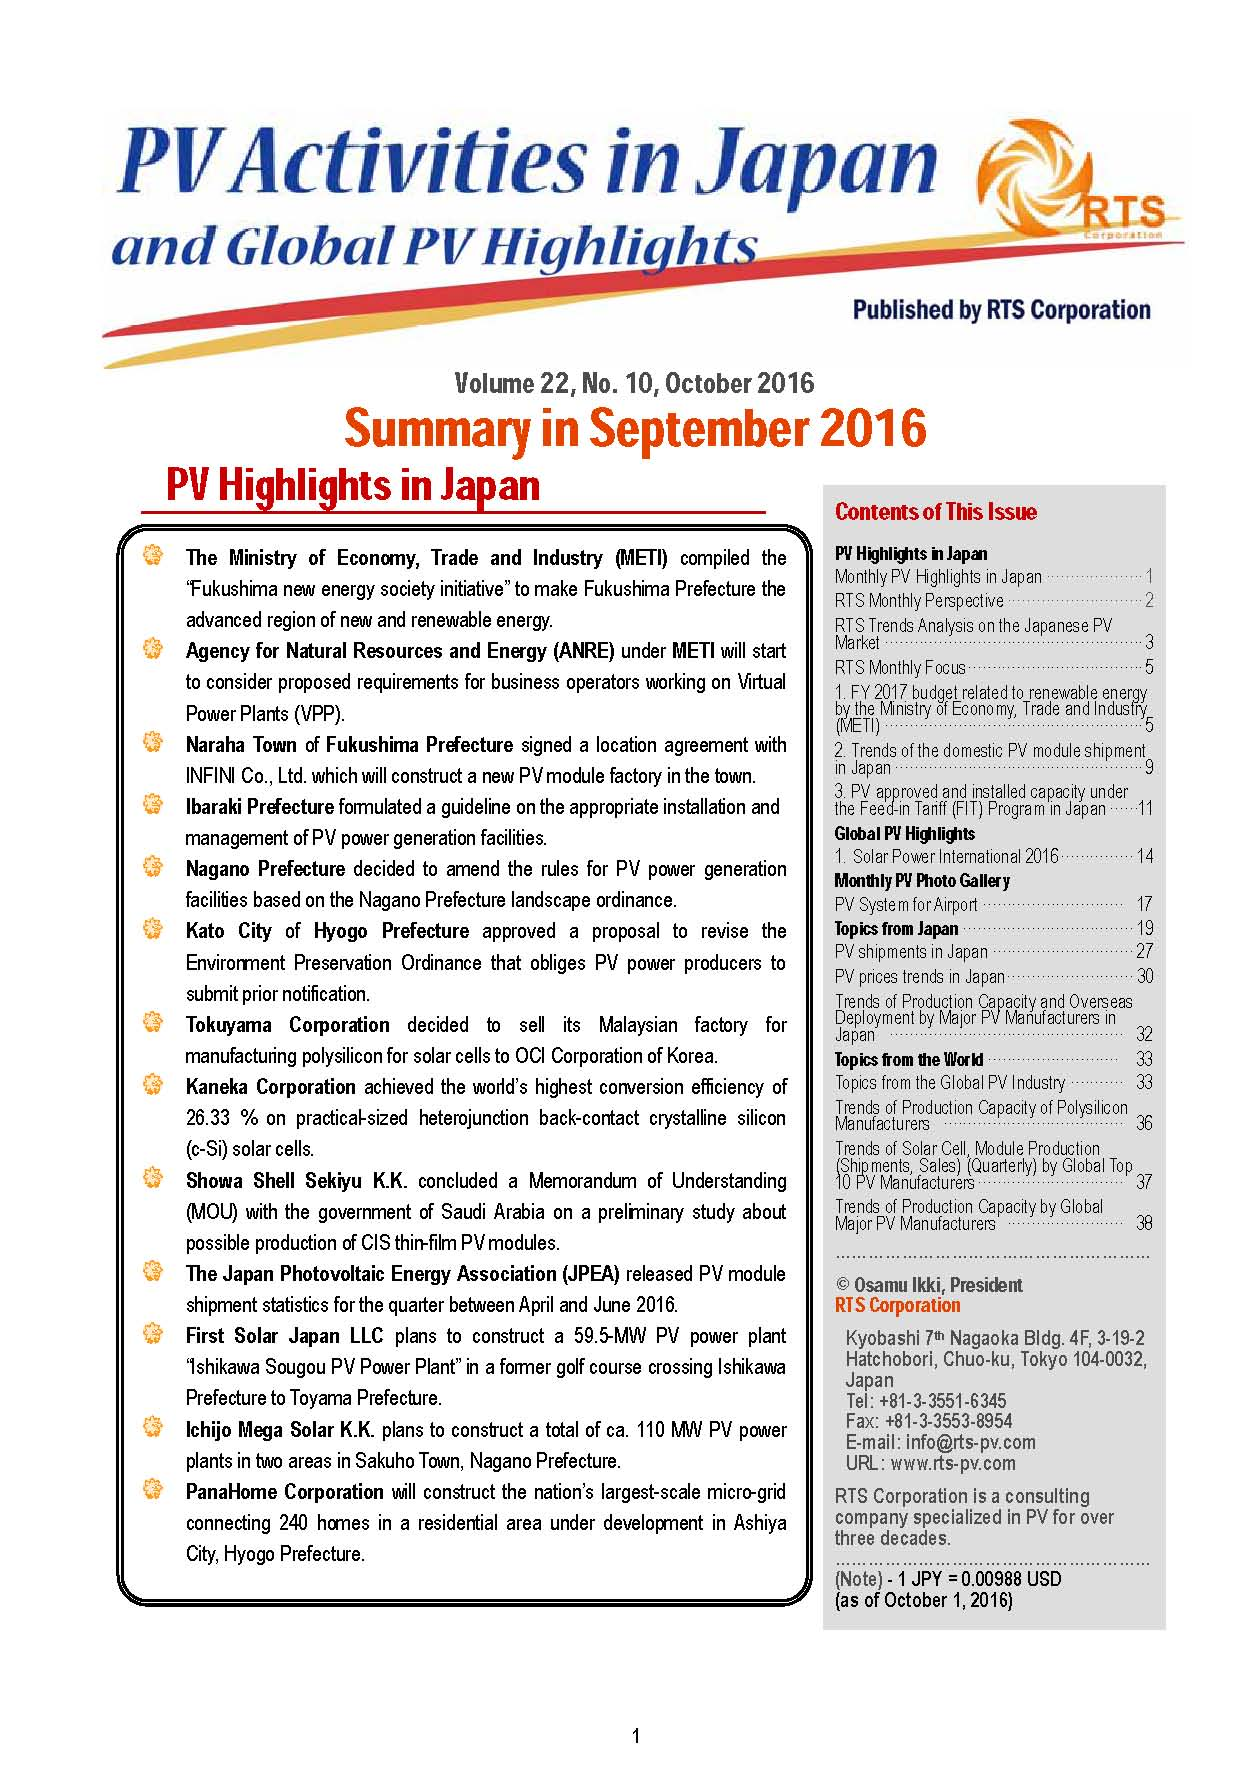 PV Activities in Japan and Global PV Highlights(monthly report)